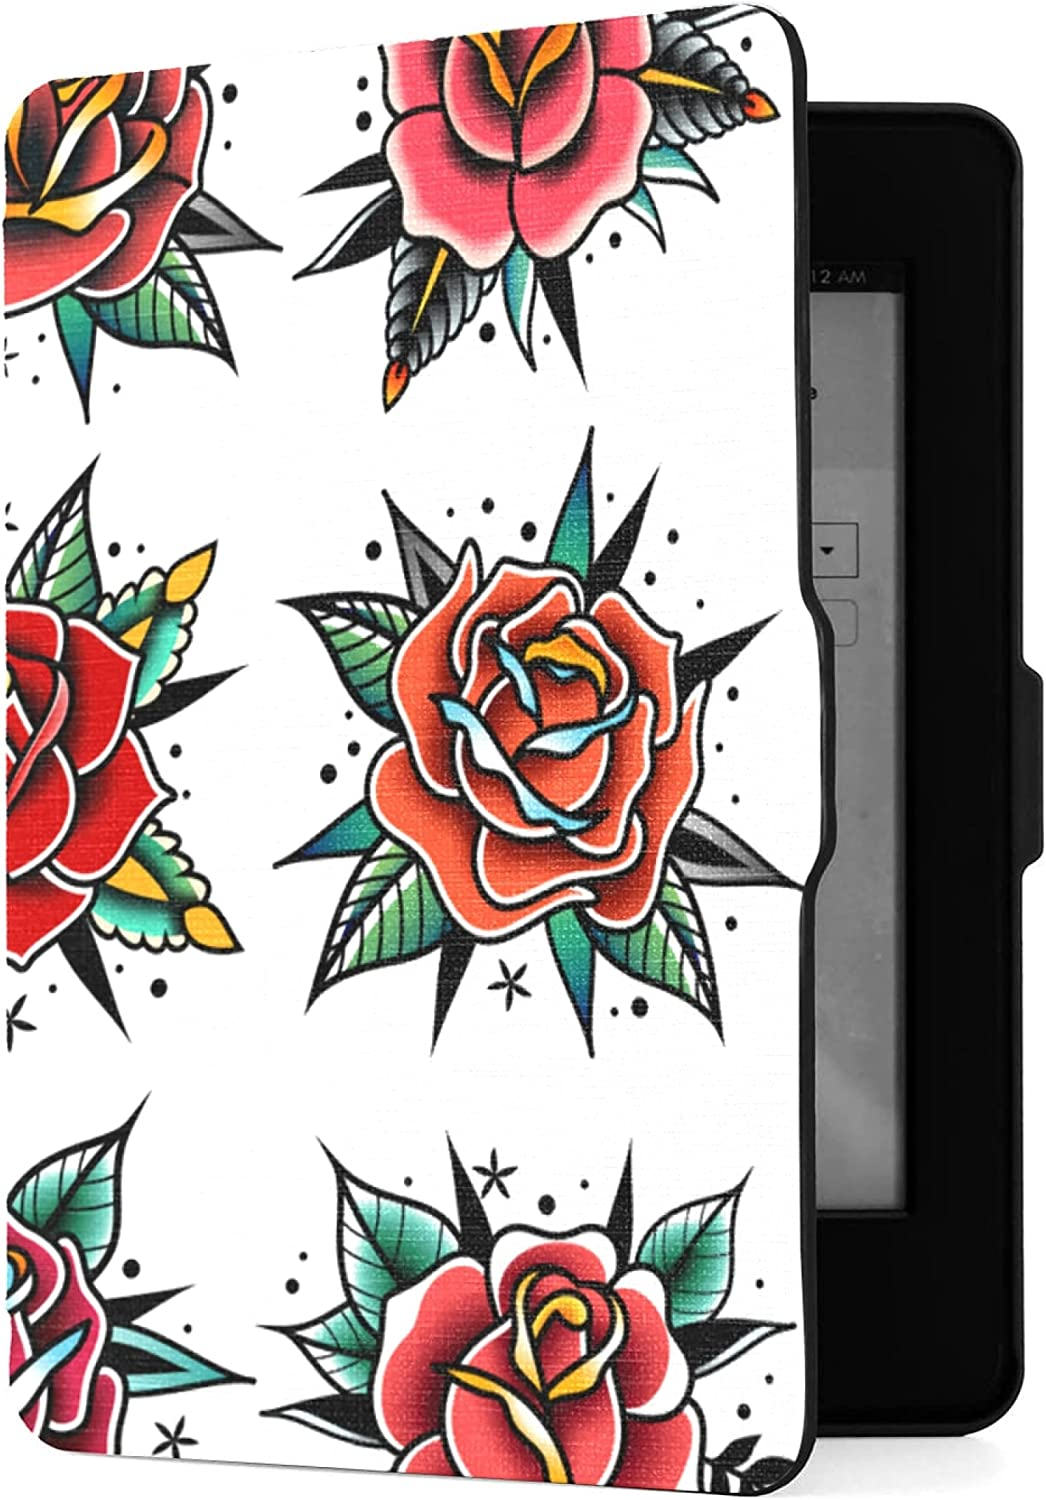 Case Max 86% OFF for Kindle Paperwhite 1 3 Generation 2 Max 50% OFF Traditional Popular